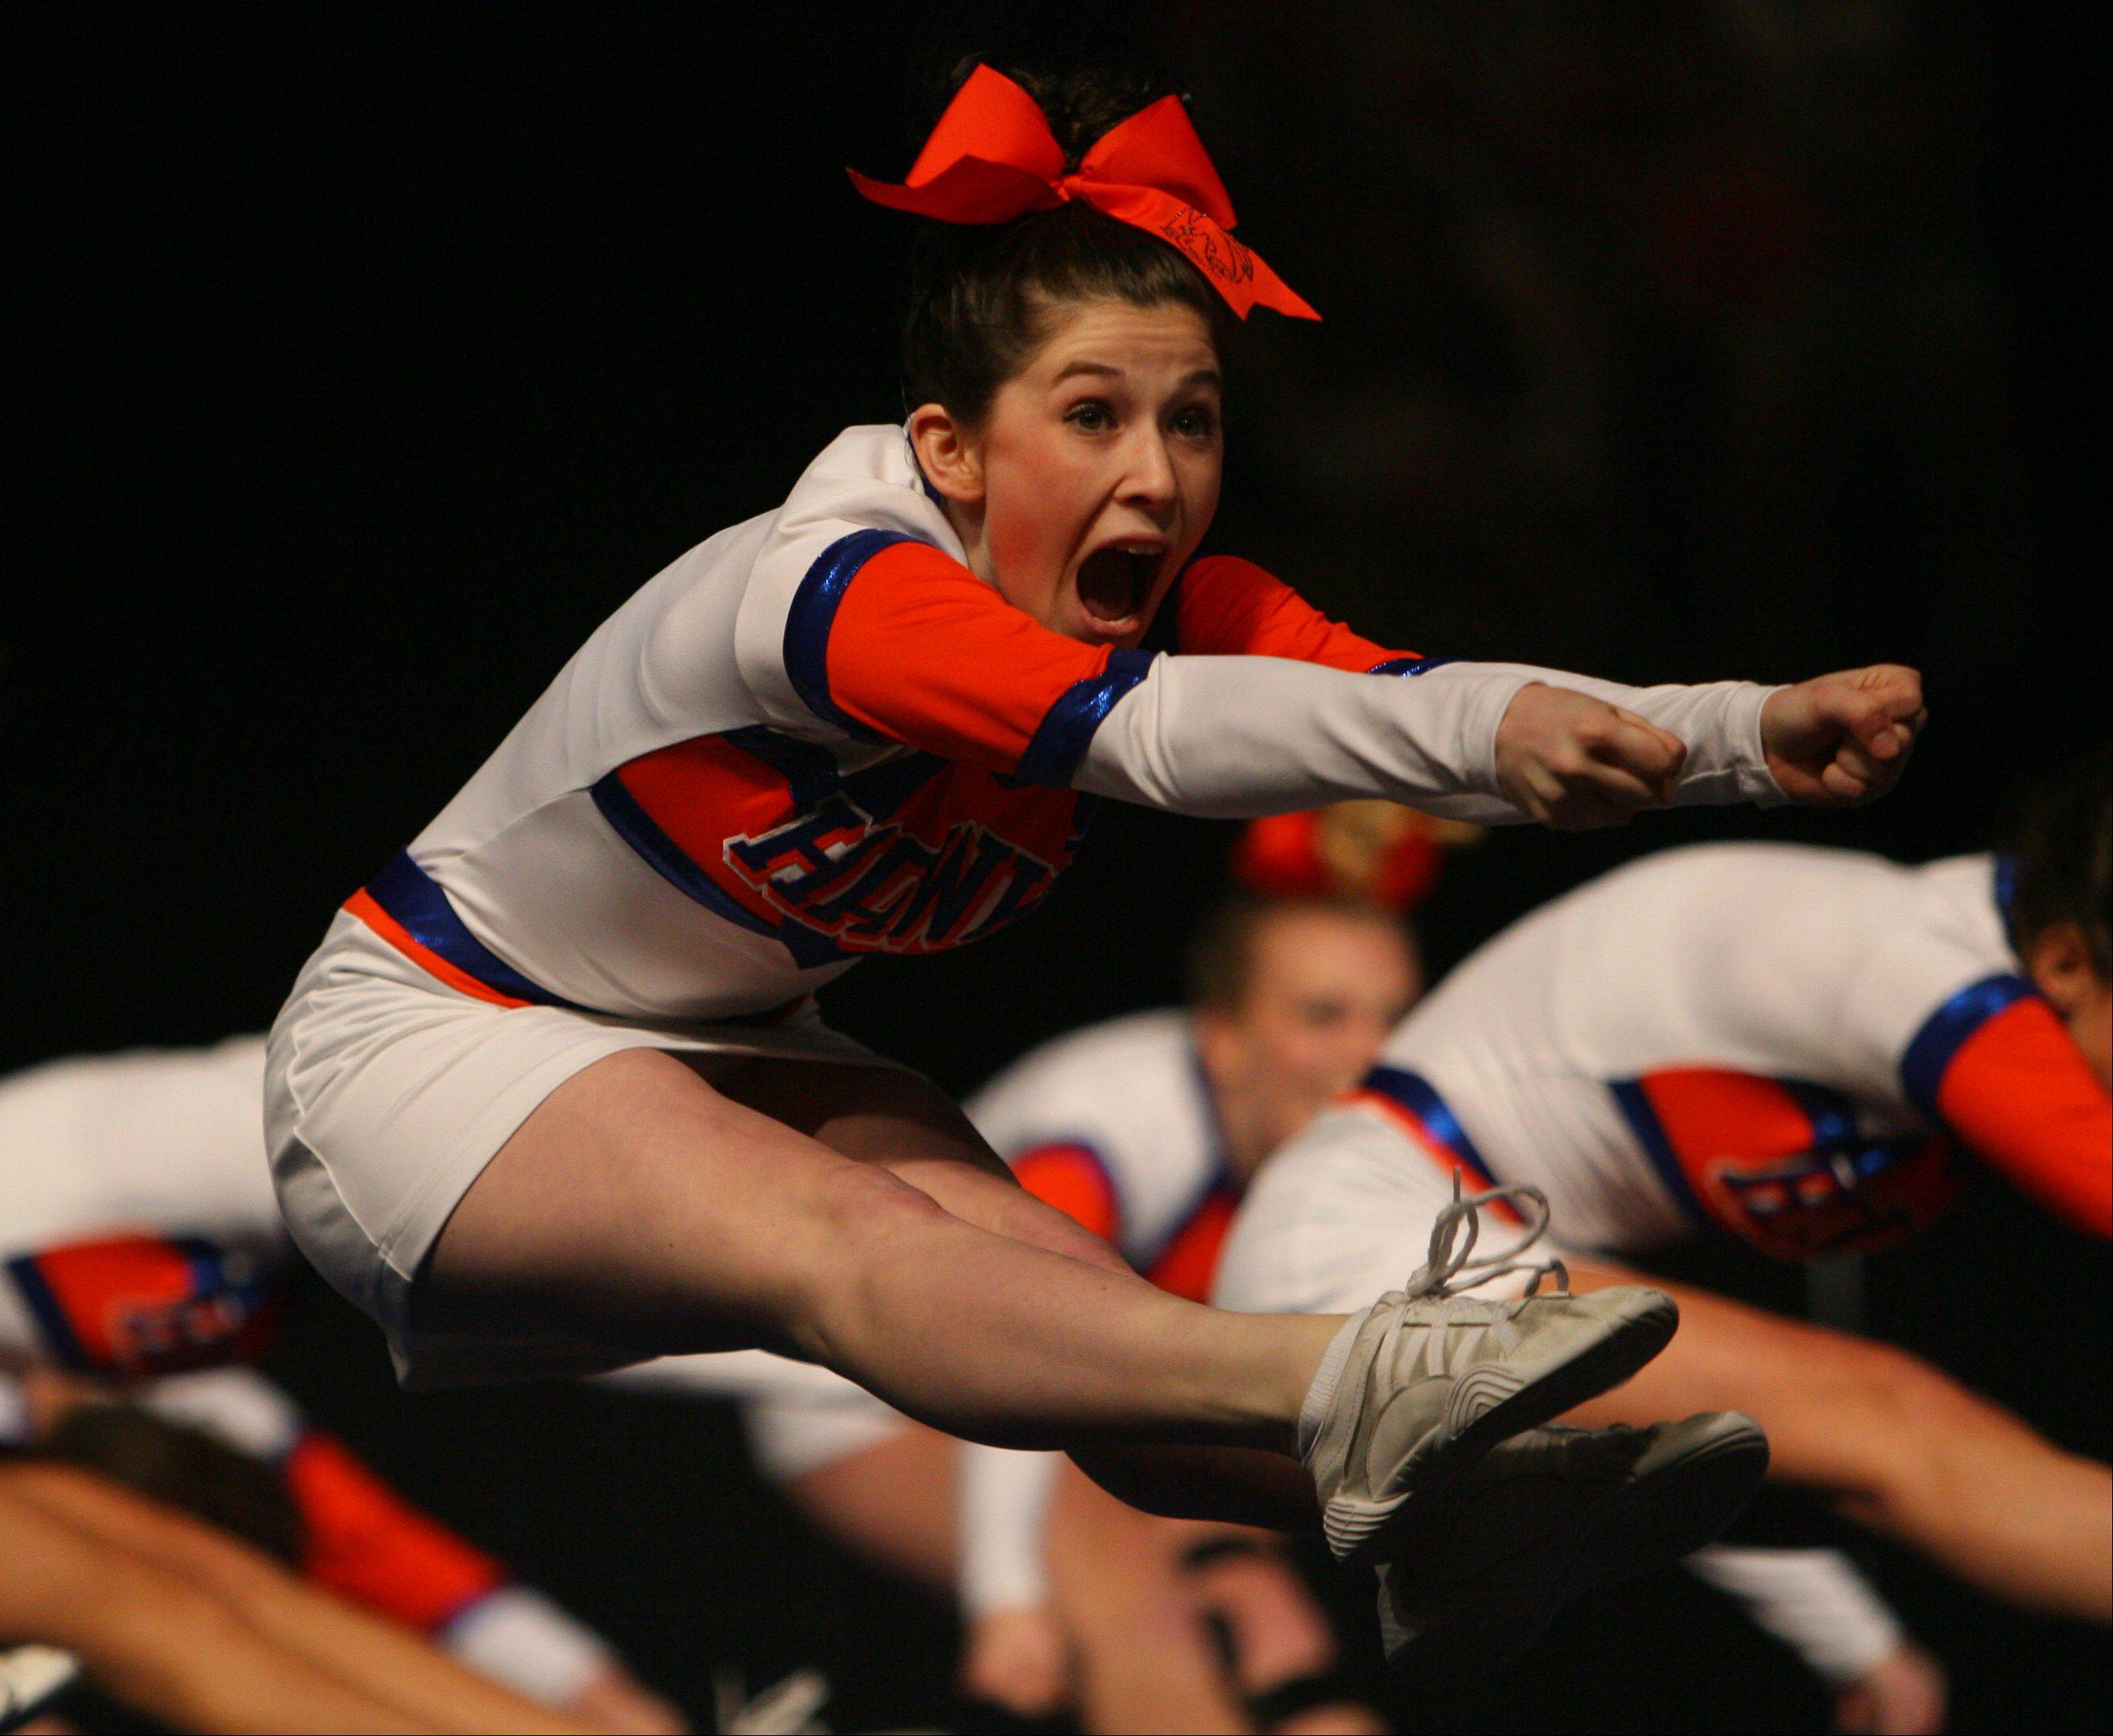 Hoffman Estates High School cheerleaders give a highflying performance Friday in the state final preliminaries.